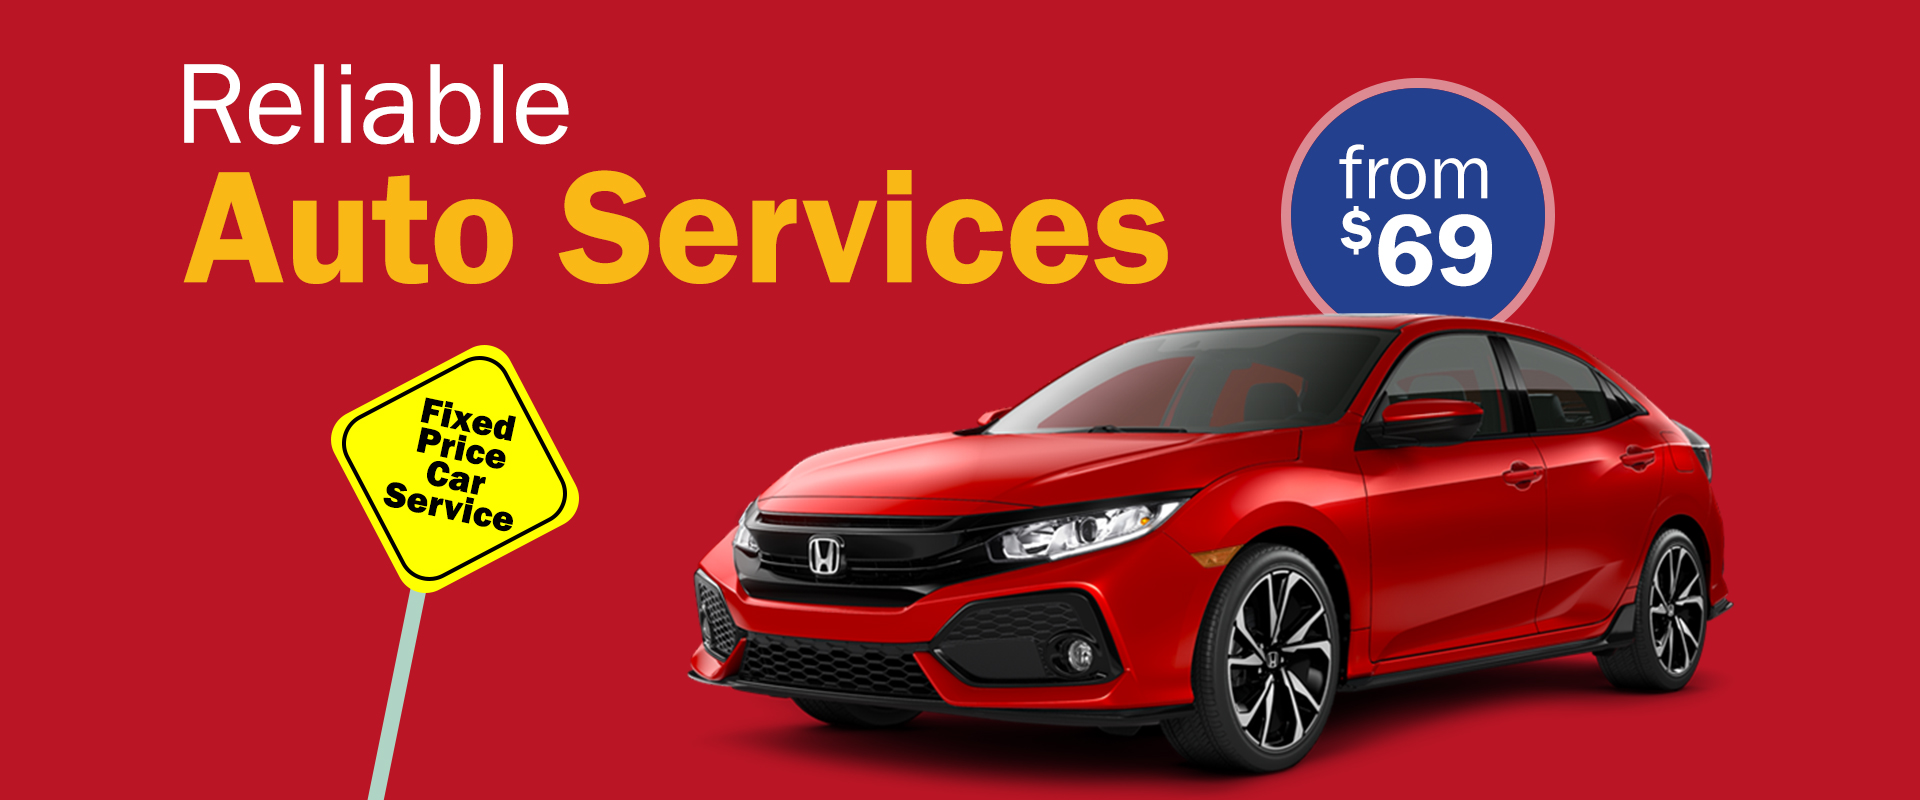 Reliable auto services